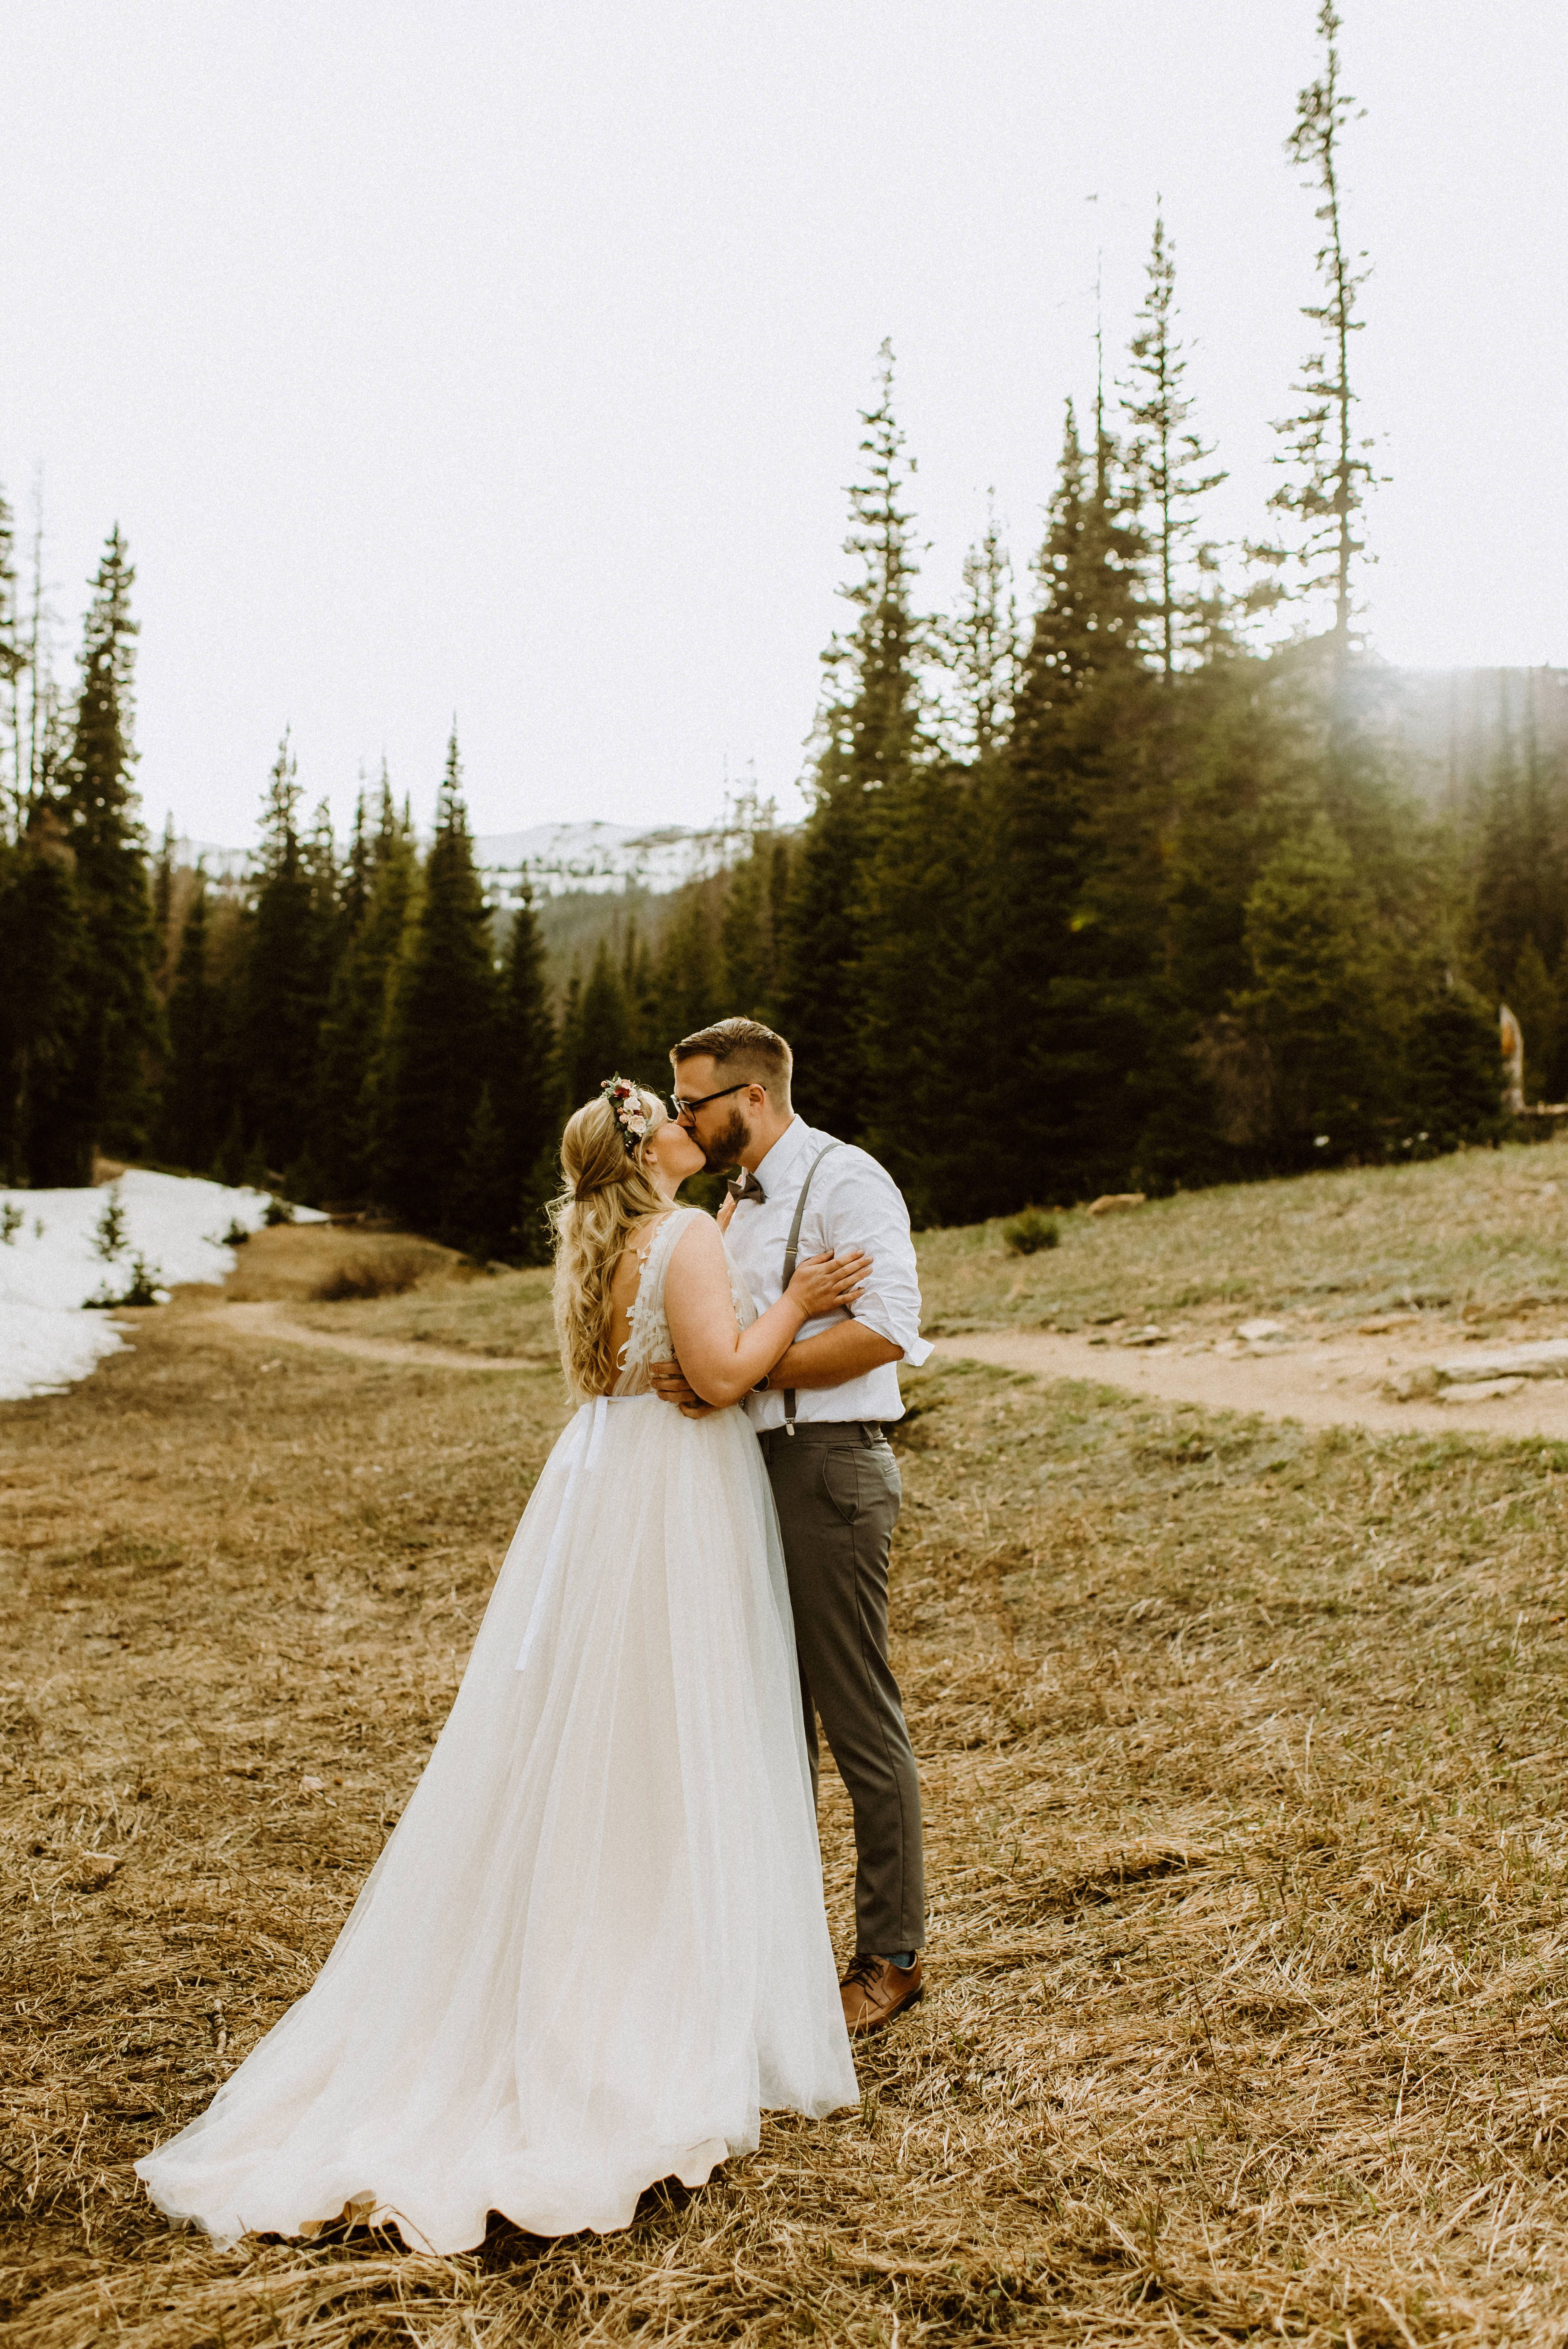 This Hidden Valley Colorado Elopement Is What Dreams Are Made Of Eloping In Colorado Is Easy With Simply Eloped And Colorado Wedding Colorado Elopement Elope